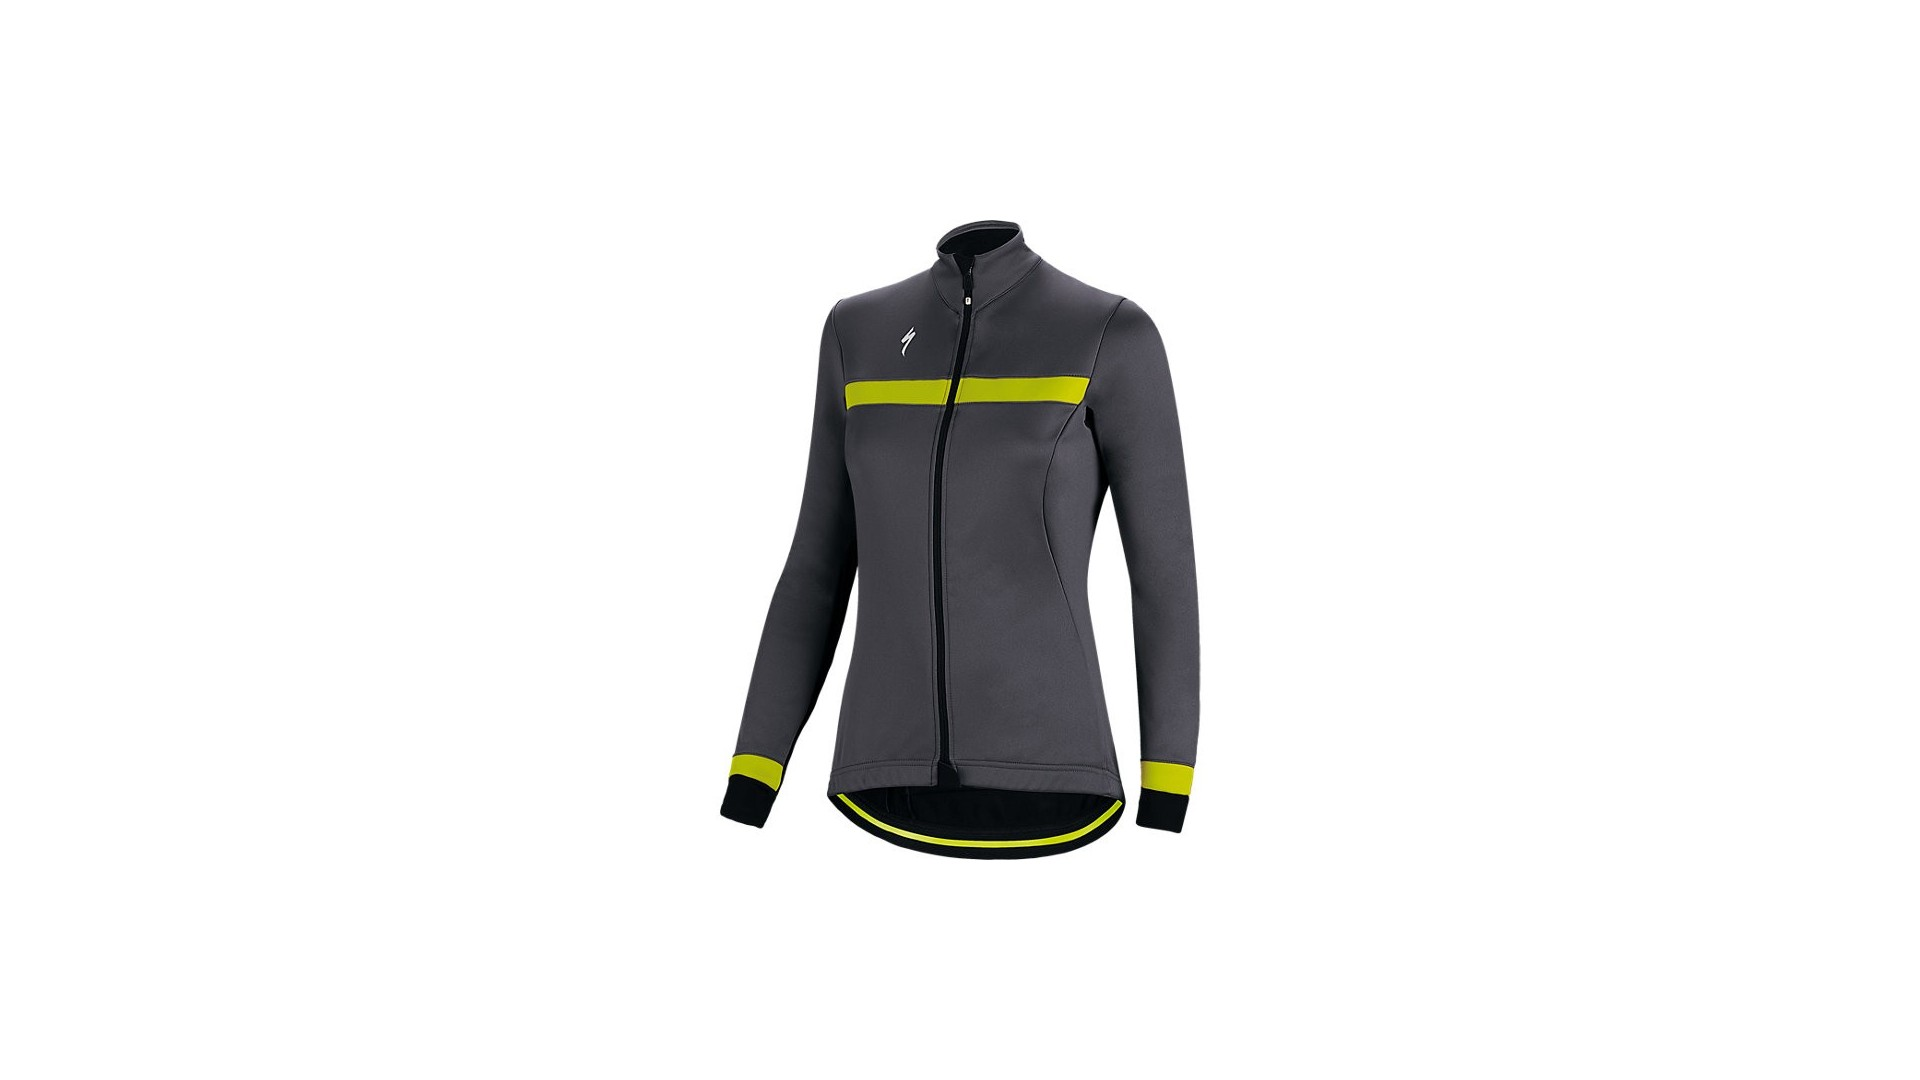 Element Rbx Sport Chaqueta Specialized Mujer Gris Oscuro/Amarillo Neon 1 IBKBike.es